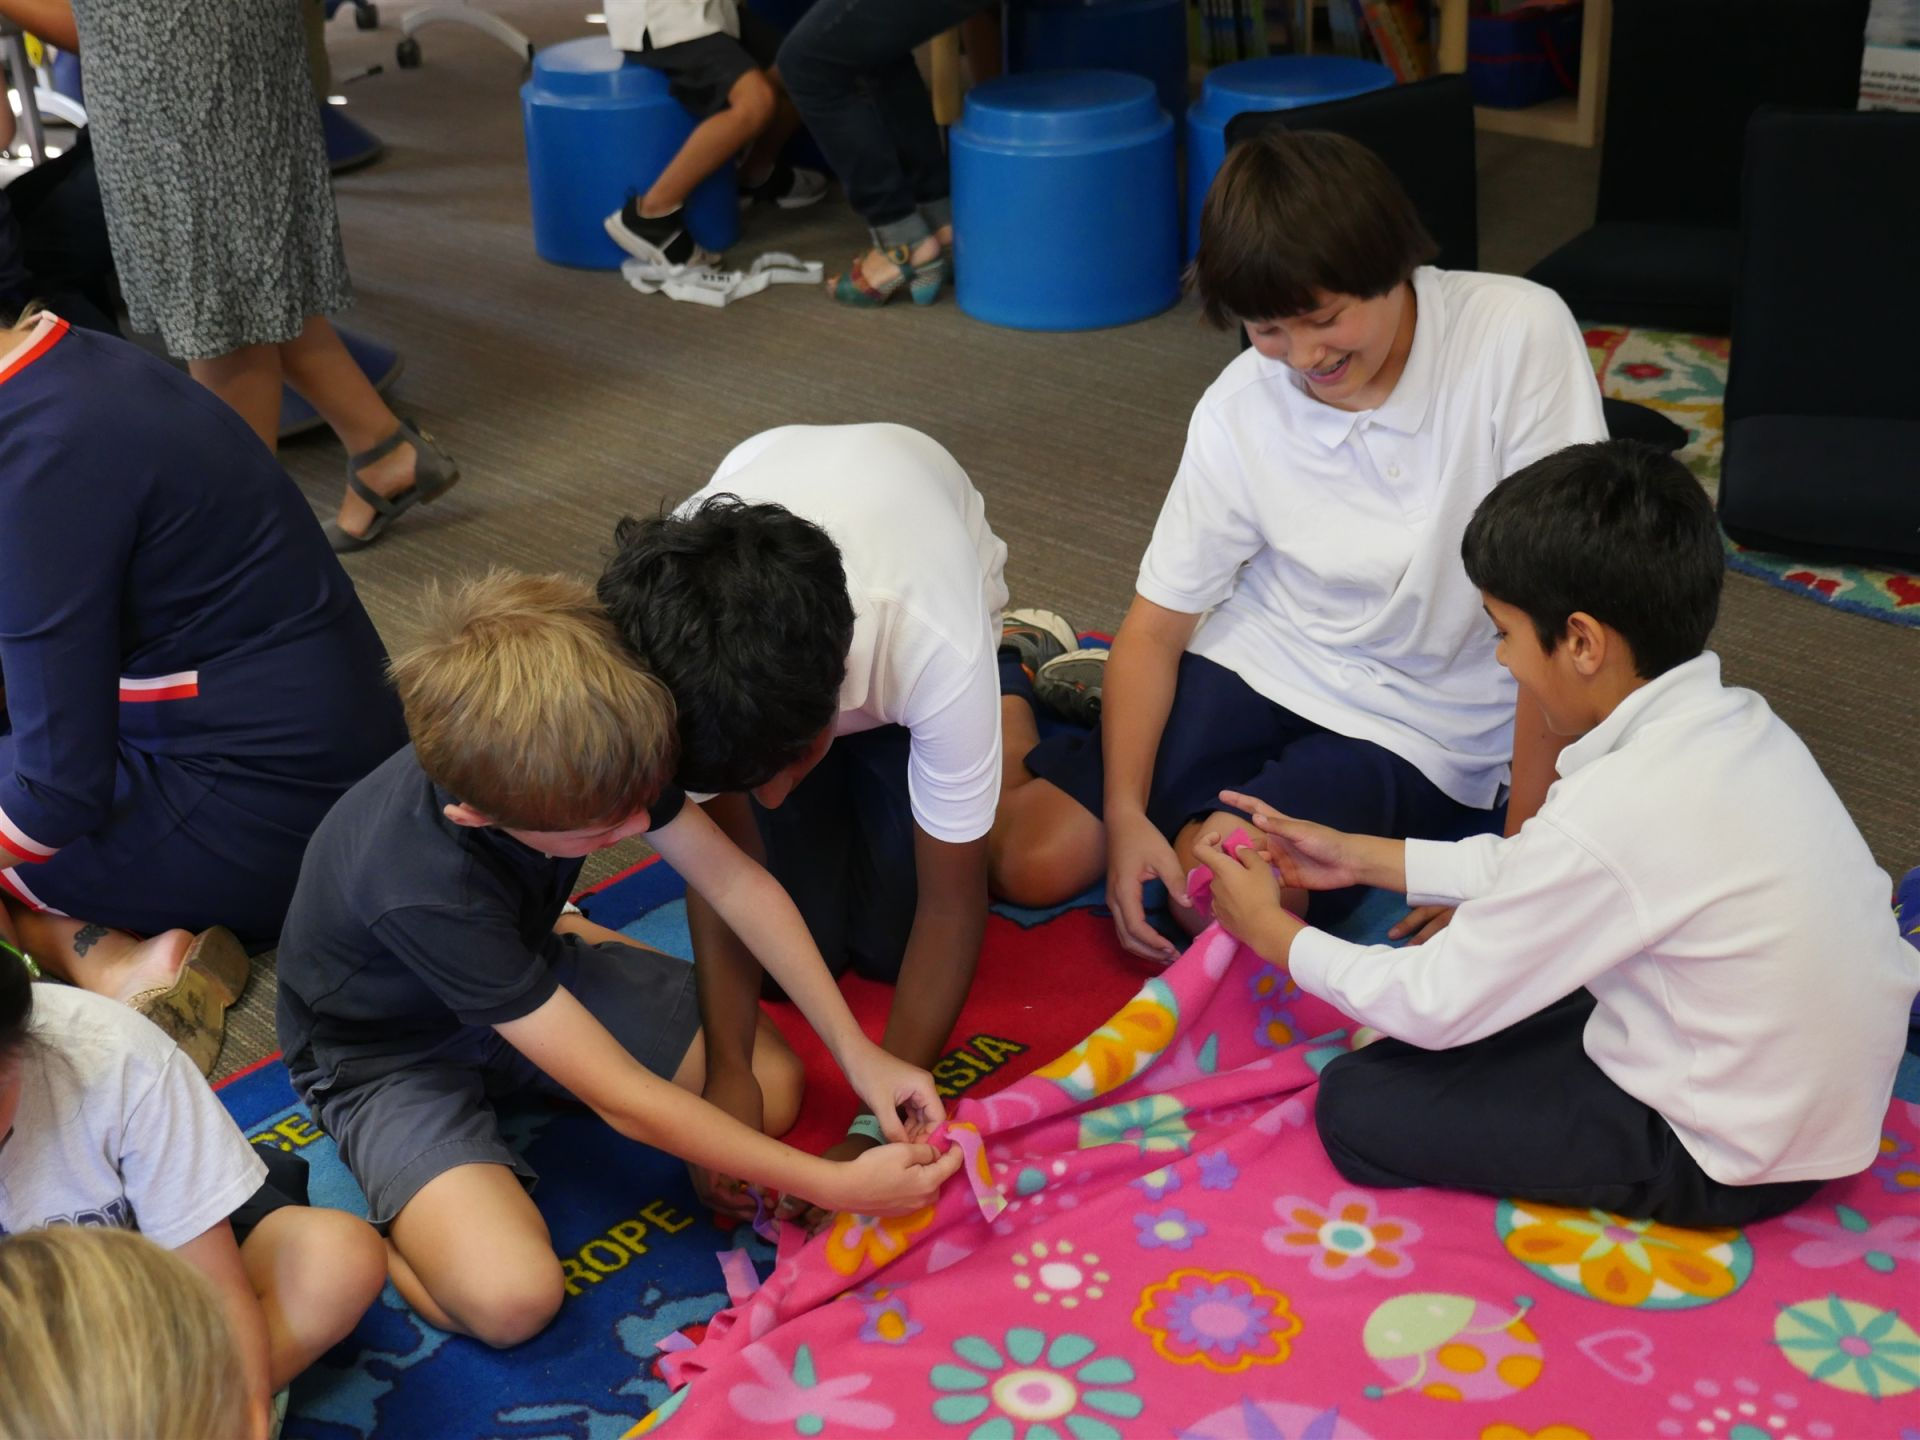 Middle School and Lower School buddies work together to make blankets for Project Linus during Hillbrook's Week Of Service.